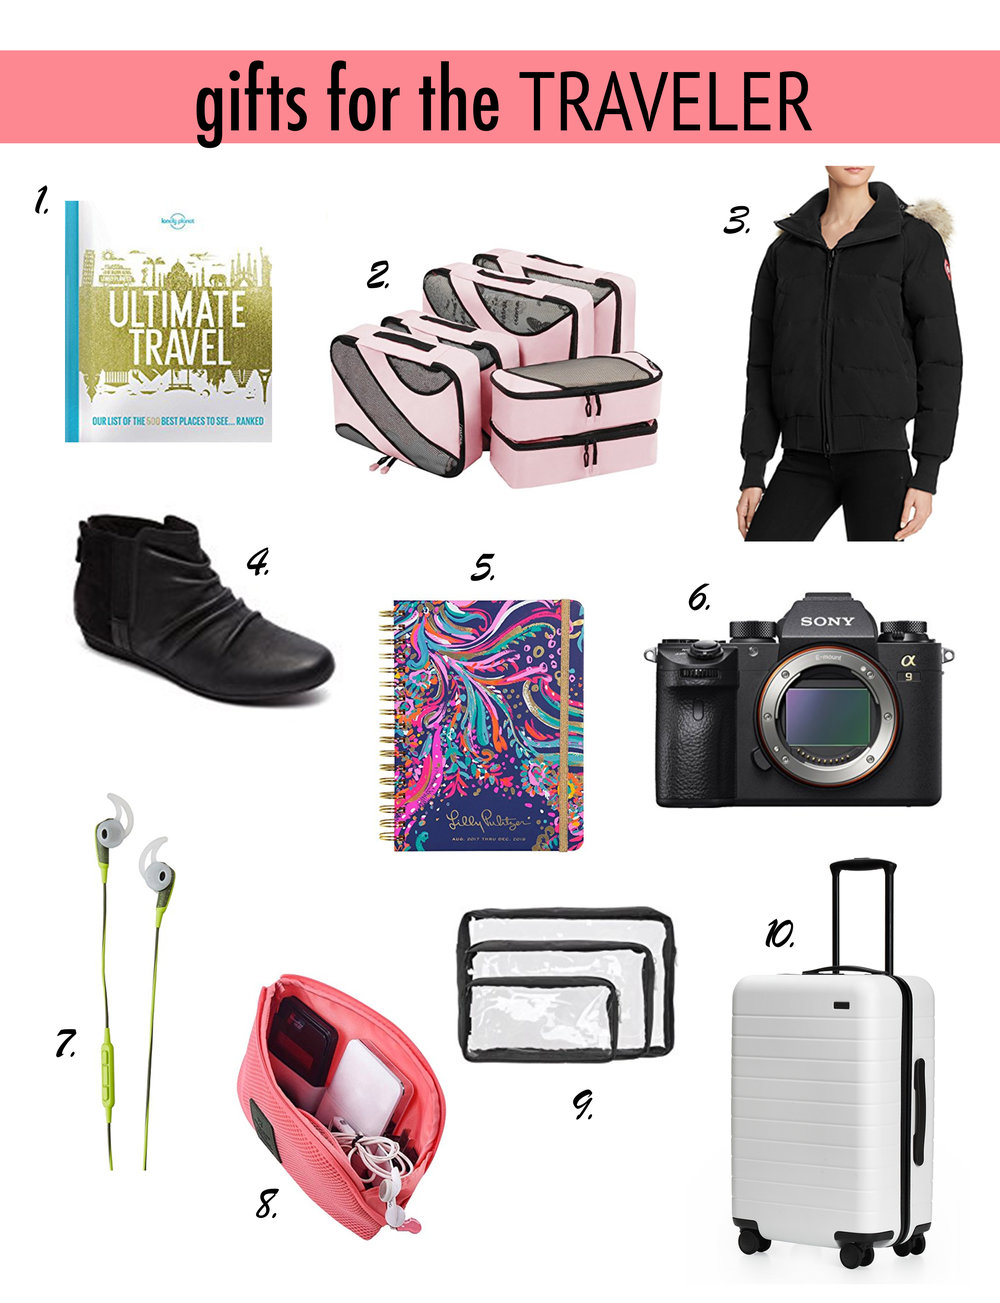 Holiday Gift Guide for the TRAVELER - NinaTekwani.com